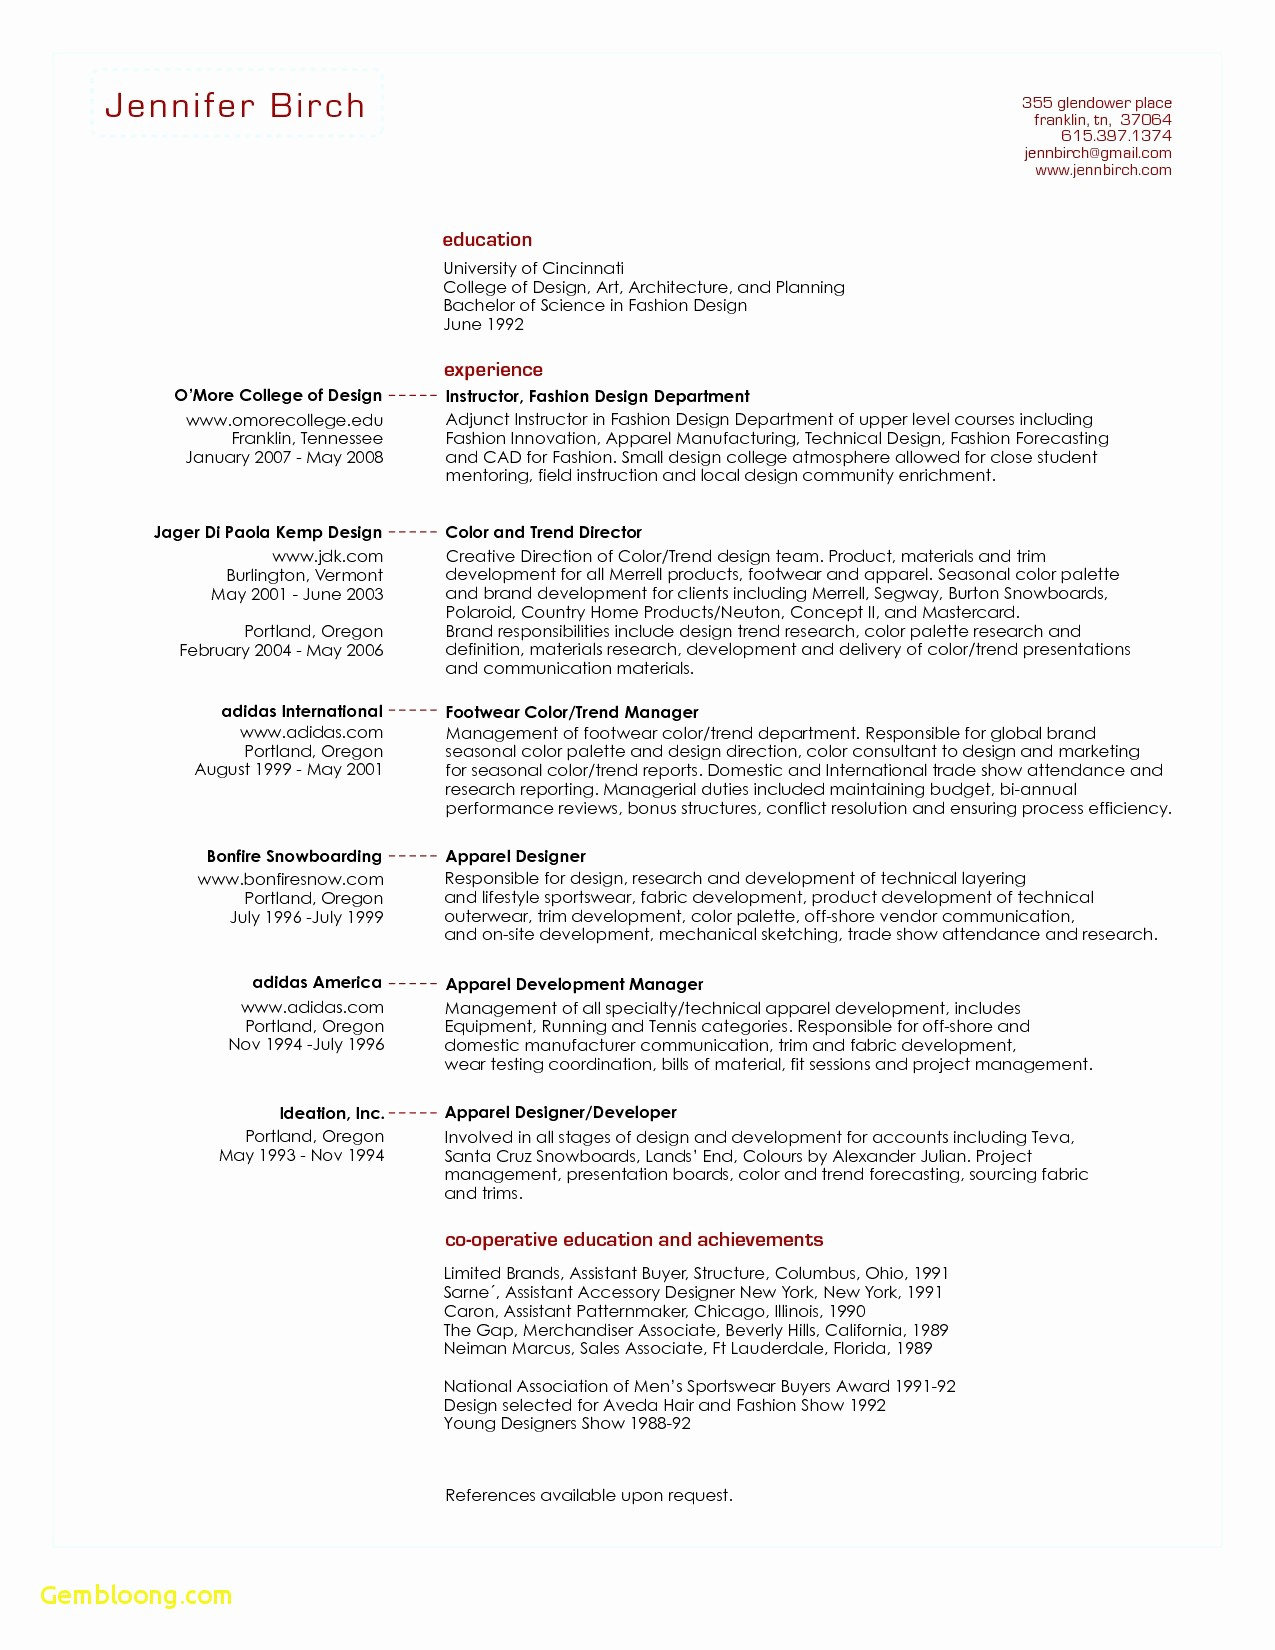 Web Developer Resume Template Doc - Google Letter Template Examples